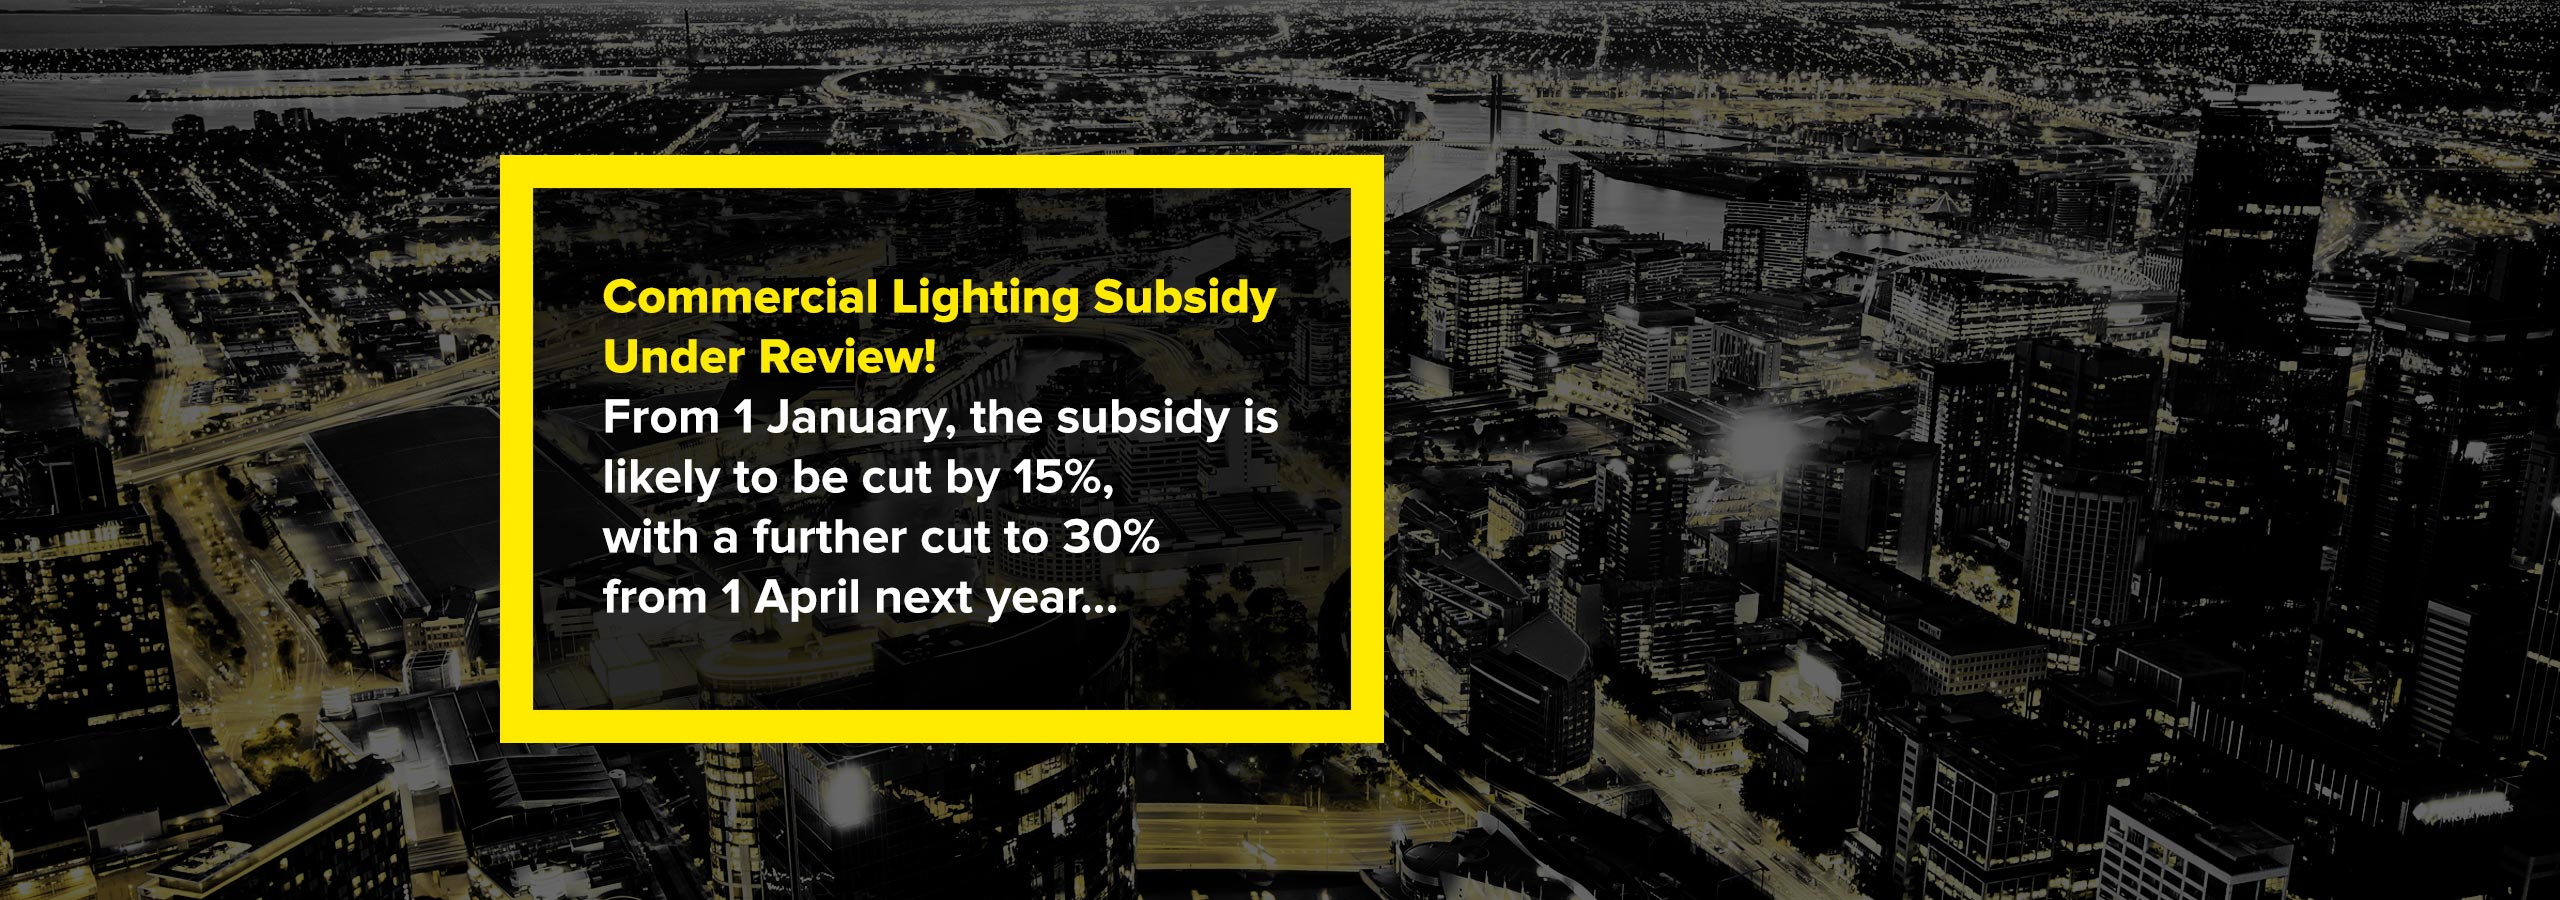 Commercial-Lighting-subsidy-under-review-From-1-January-the-subsidy-is-likely-to-be-cut-by-15-percent